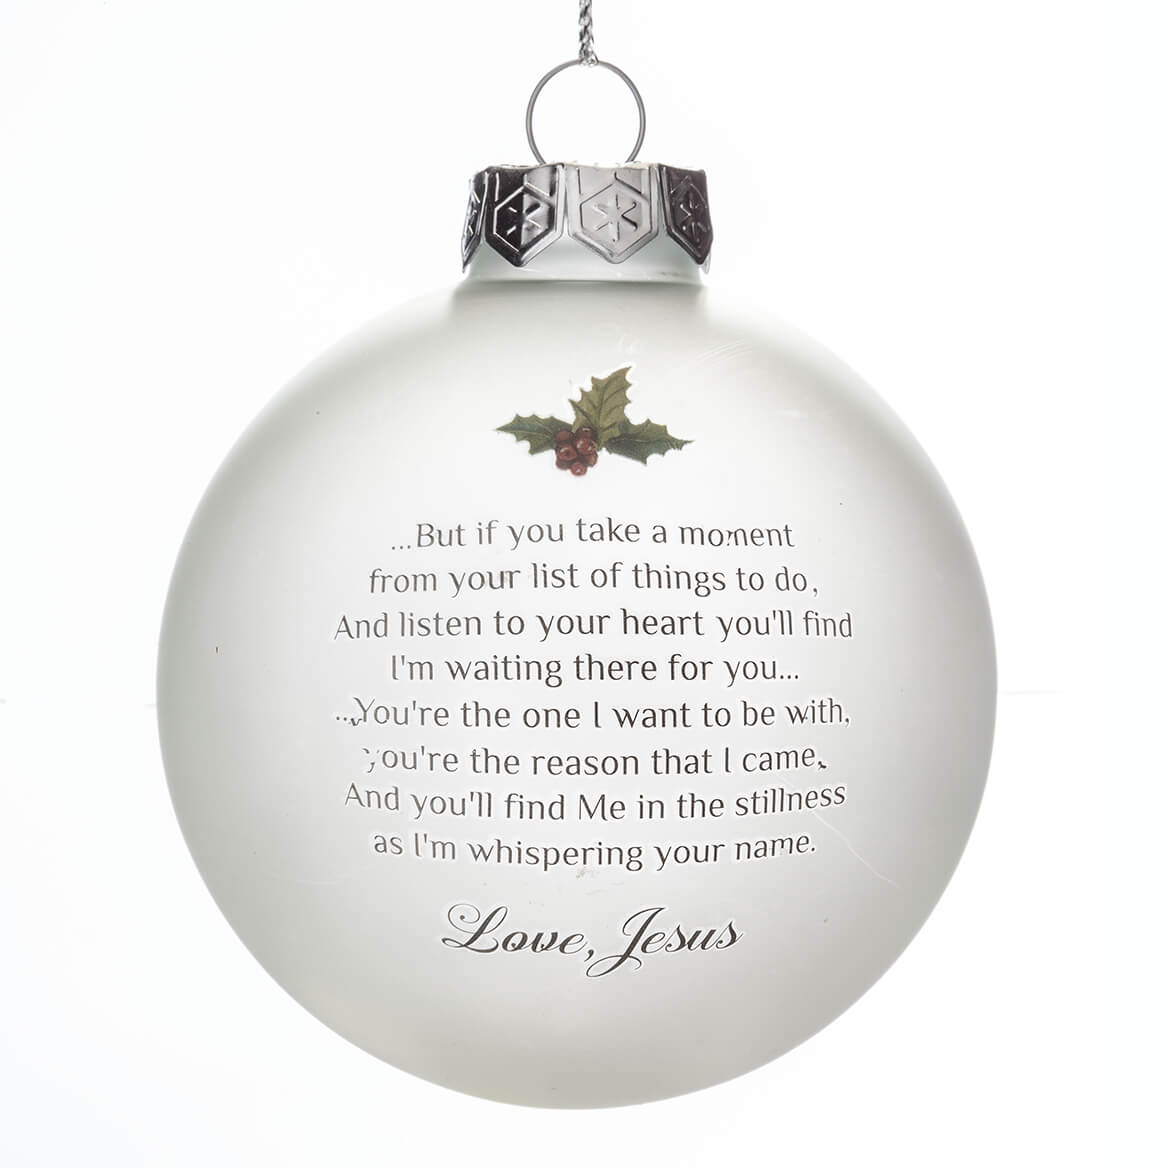 Personalized Ornaments - Christmas Ornaments - Walter Drake